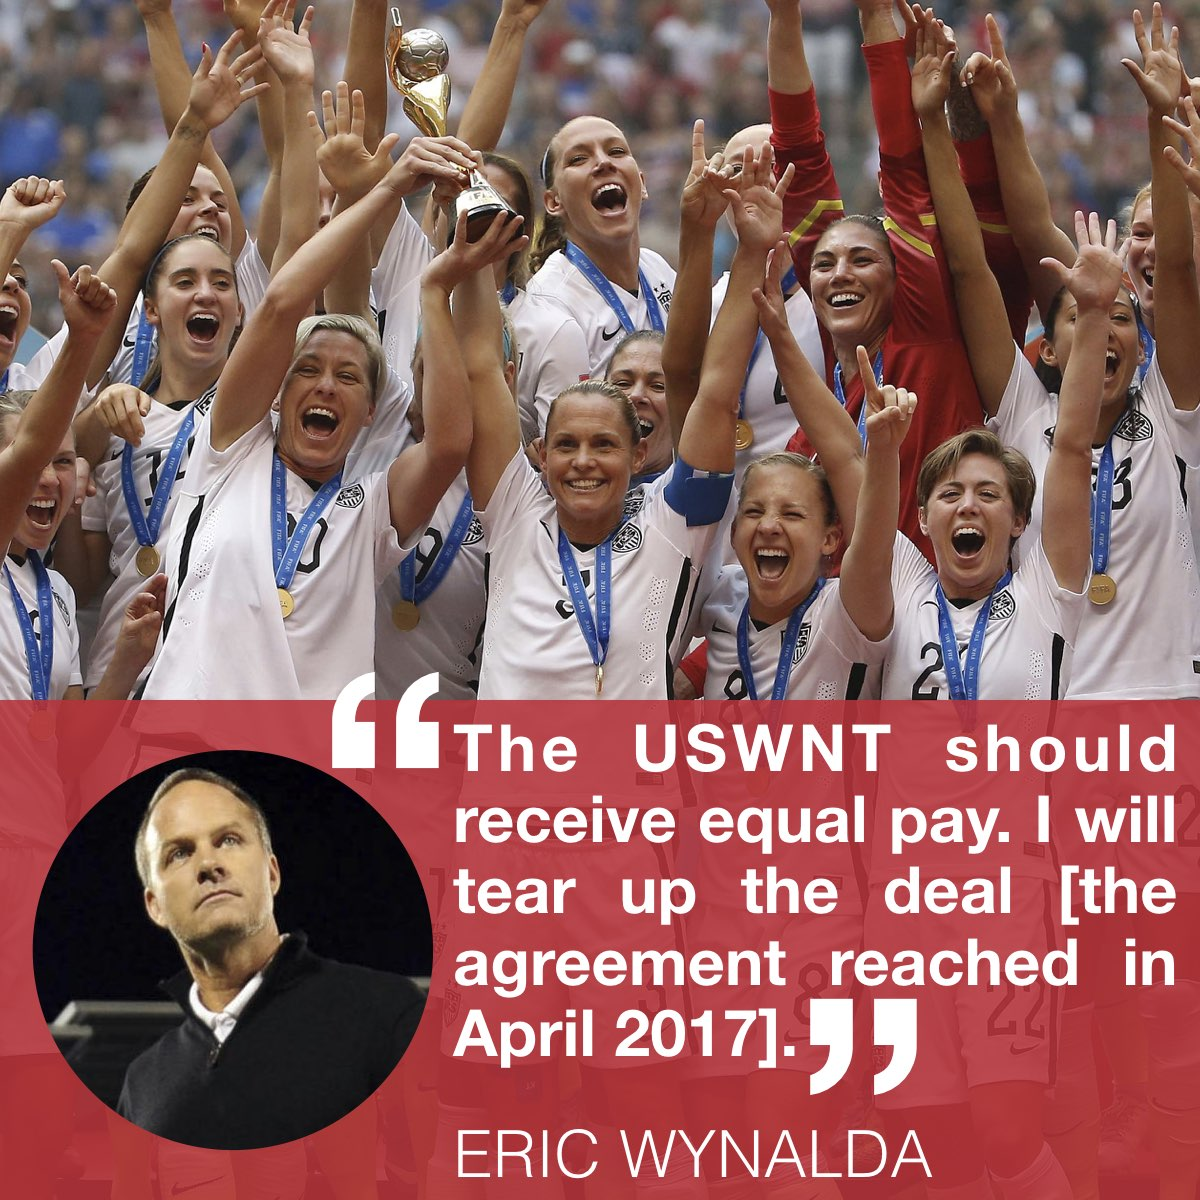 The next president of US Soccer, @EricWynalda, believes in equal pay for our #USWNT. It&#39;s time for change. #Wynalda4USSF<br>http://pic.twitter.com/hLoOGrS7cb